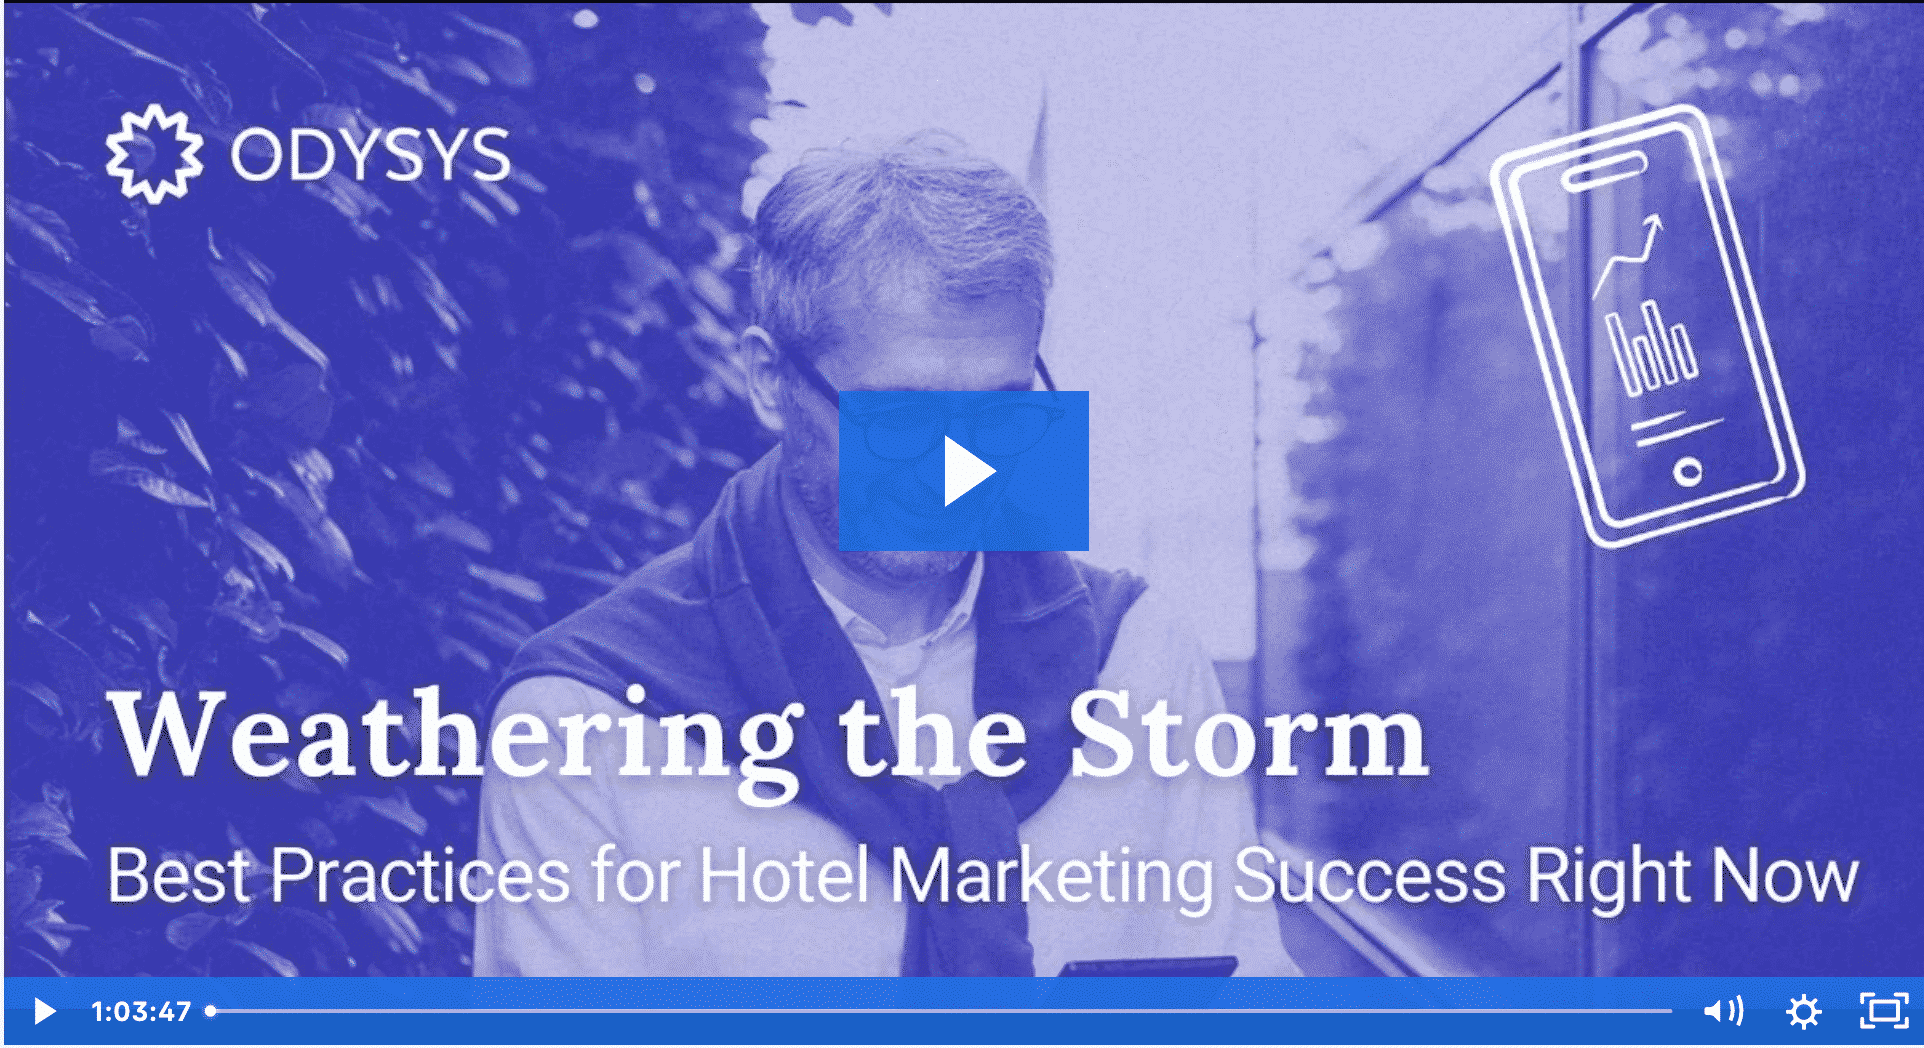 , Weathering the Storm: Best Practices for Hotel Marketing Success Right Now, Odysys